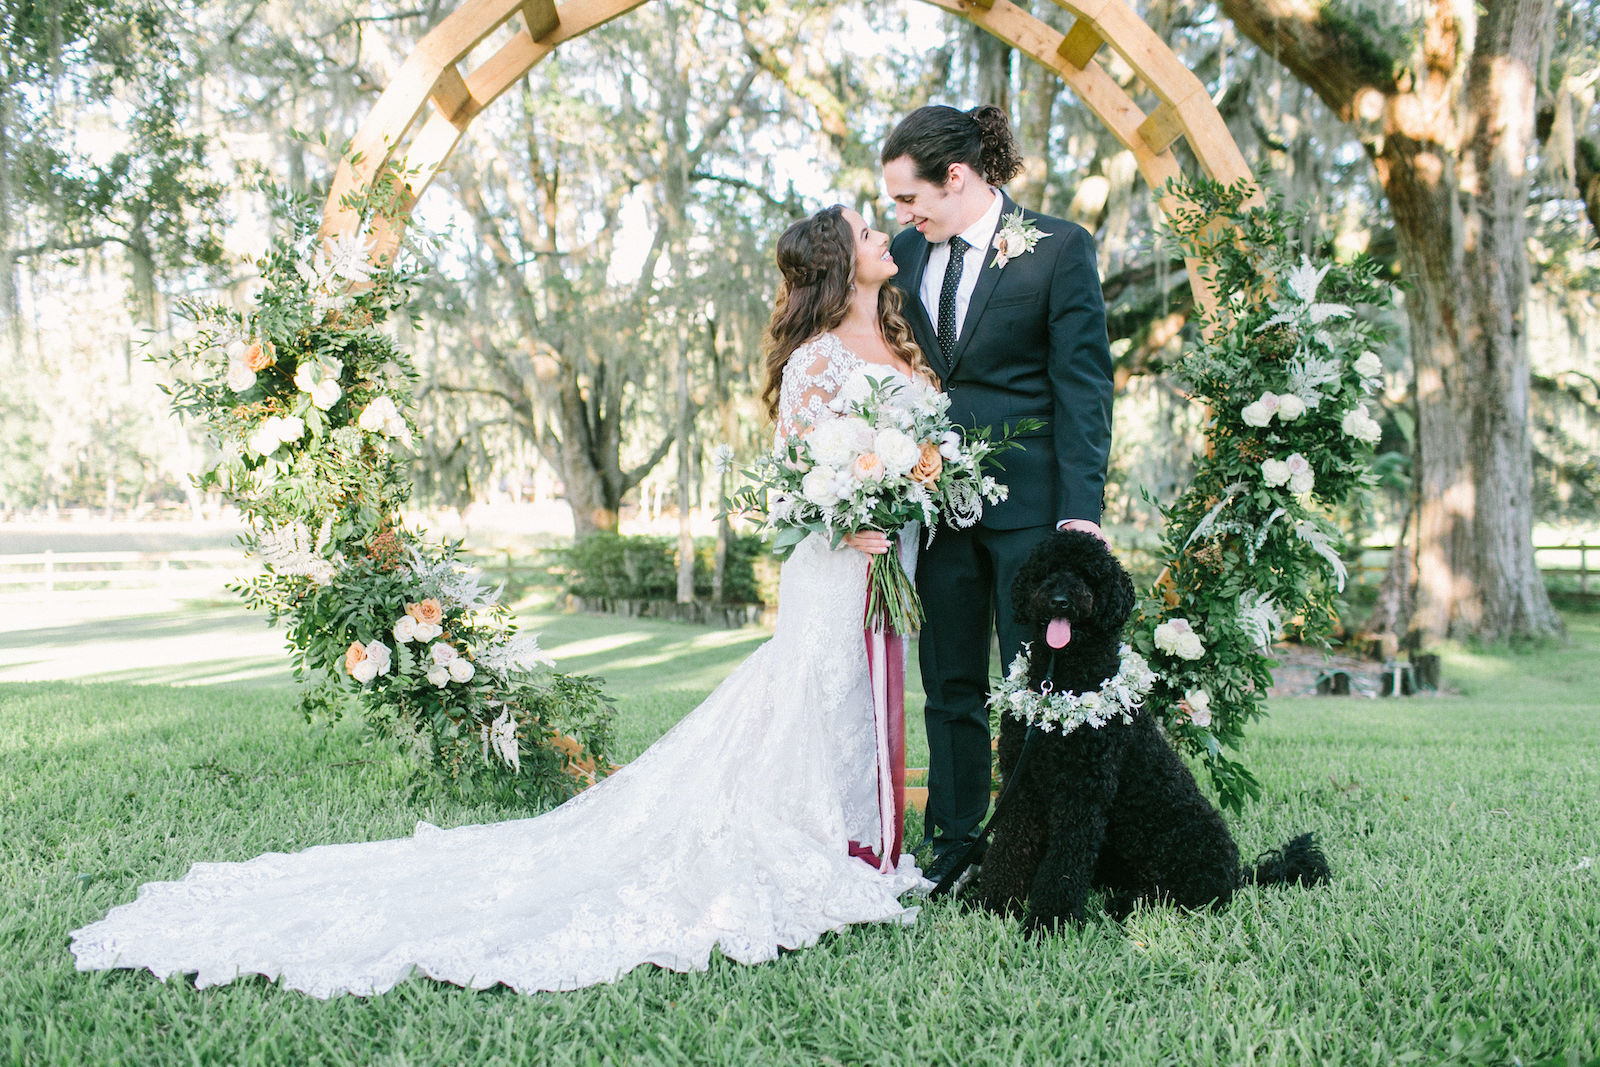 Outdoor Florida Bride and Groom Portrait with Pet Dog Labradoodle | Best Dog of Honor with Floral Collar | Groom Wearing Classic Black Suit Tux | Lace Mermaid Long Sleeve Low Back Illusion Lace Bridal Gown Wedding Dress | Ivory Champagne and Peach Natural Bouquet with Roses Astilbe and Greenery tied with Blush Pink and Mauve Ribbons | Round Wood Moon Arch Wedding Ceremony Backdrop with Natural Ivory and Peach Garland Floral Arrangements